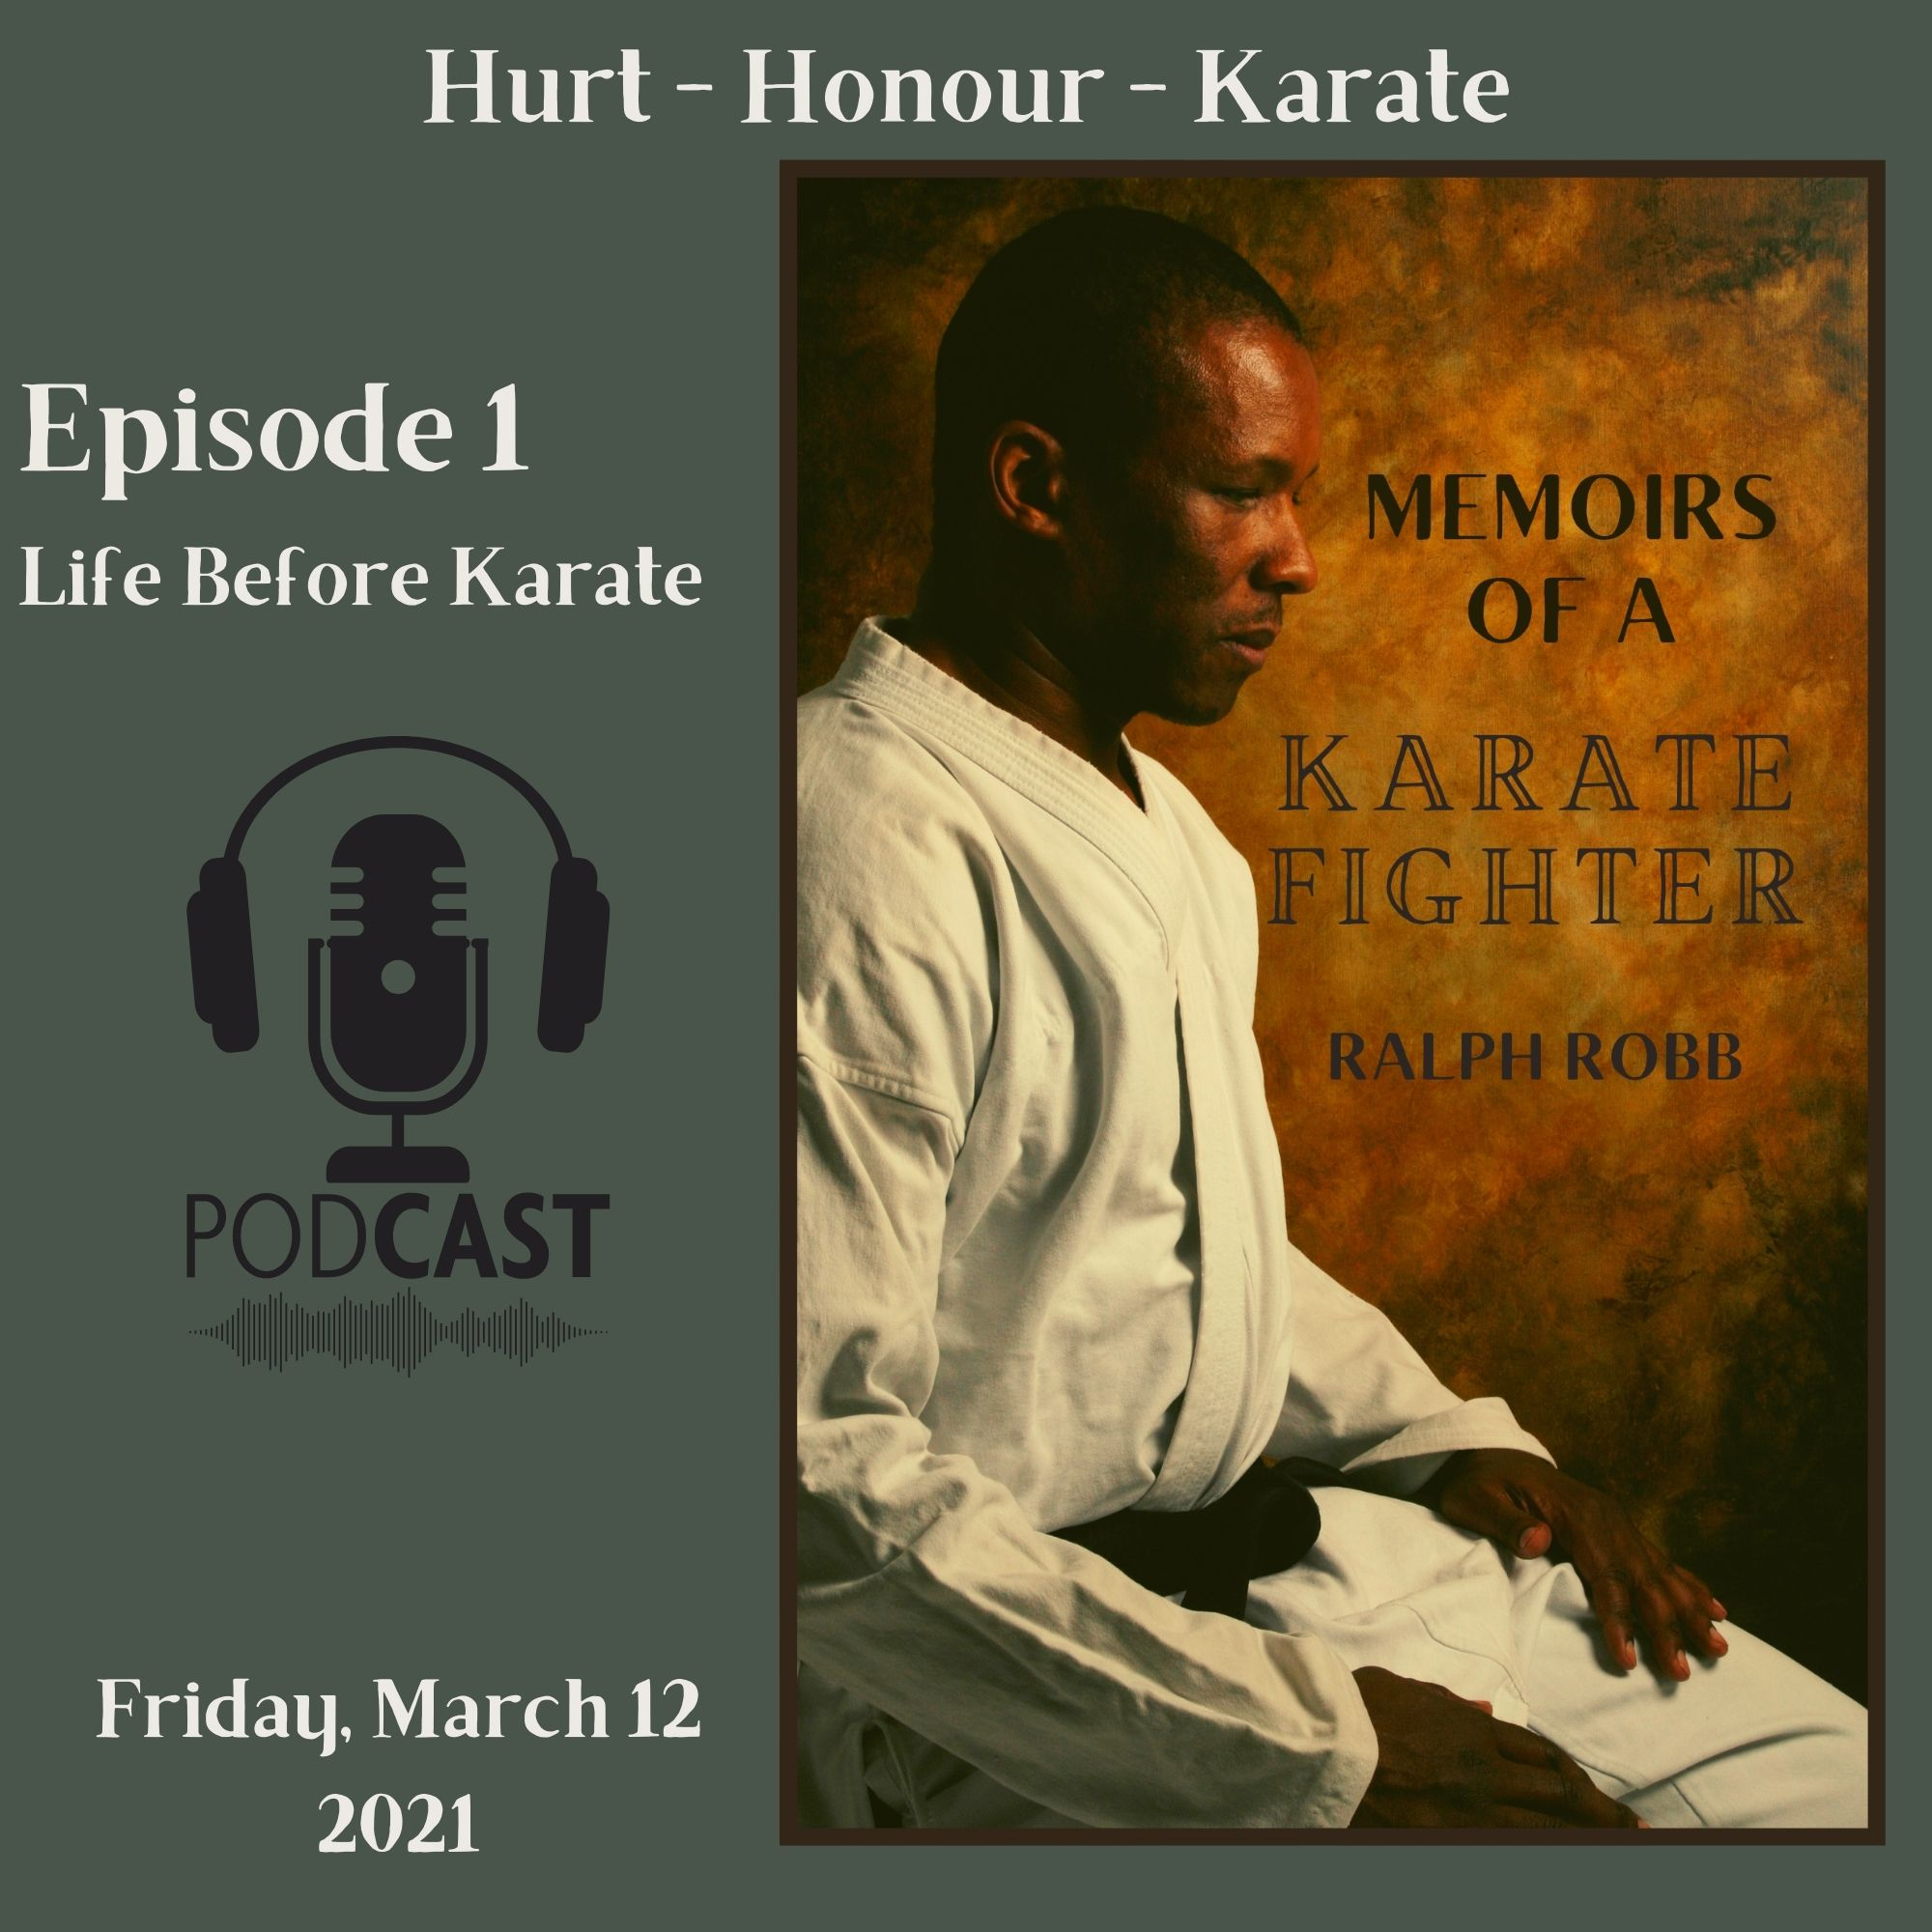 Artwork for podcast Memoirs of a Karate Fighter